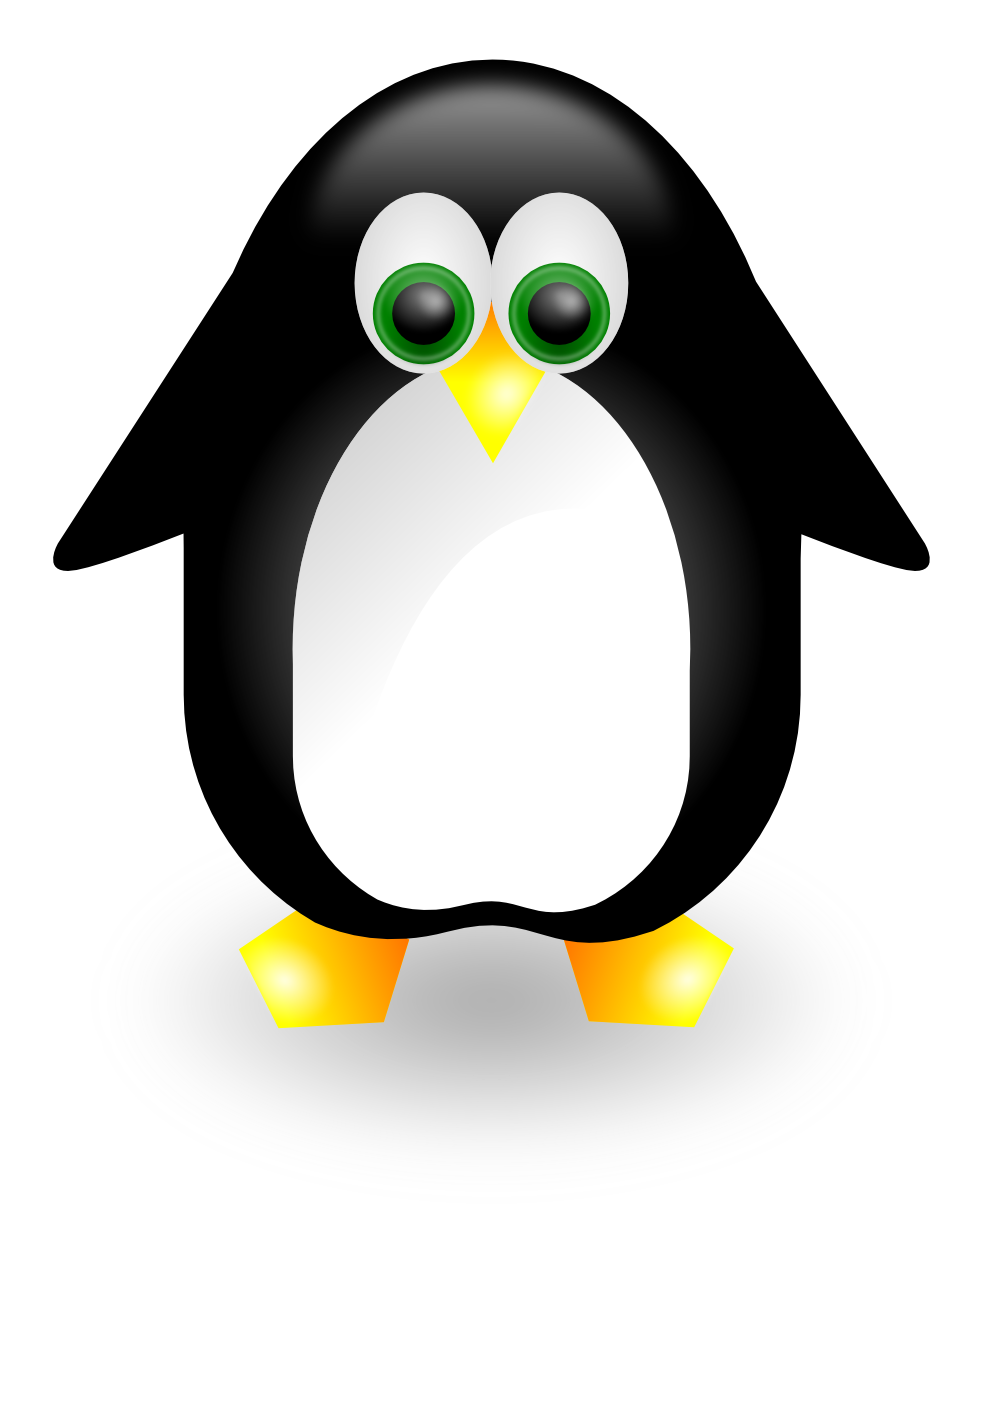 Linux clipart #12, Download drawings